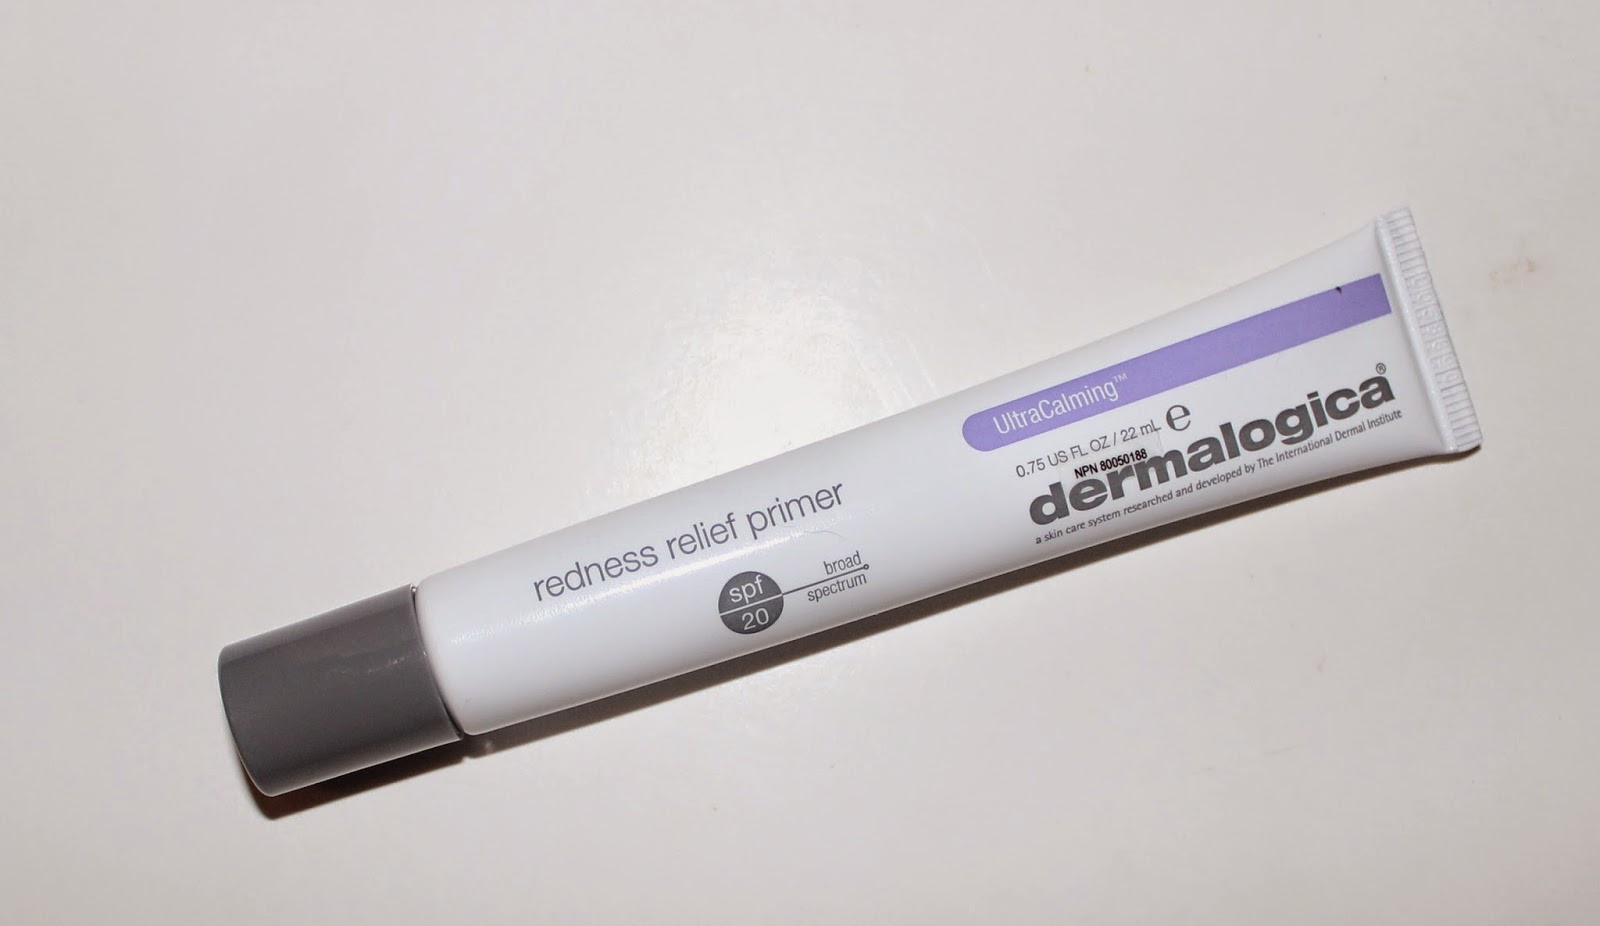 Dermalogica Redness Relief Primer SPF20